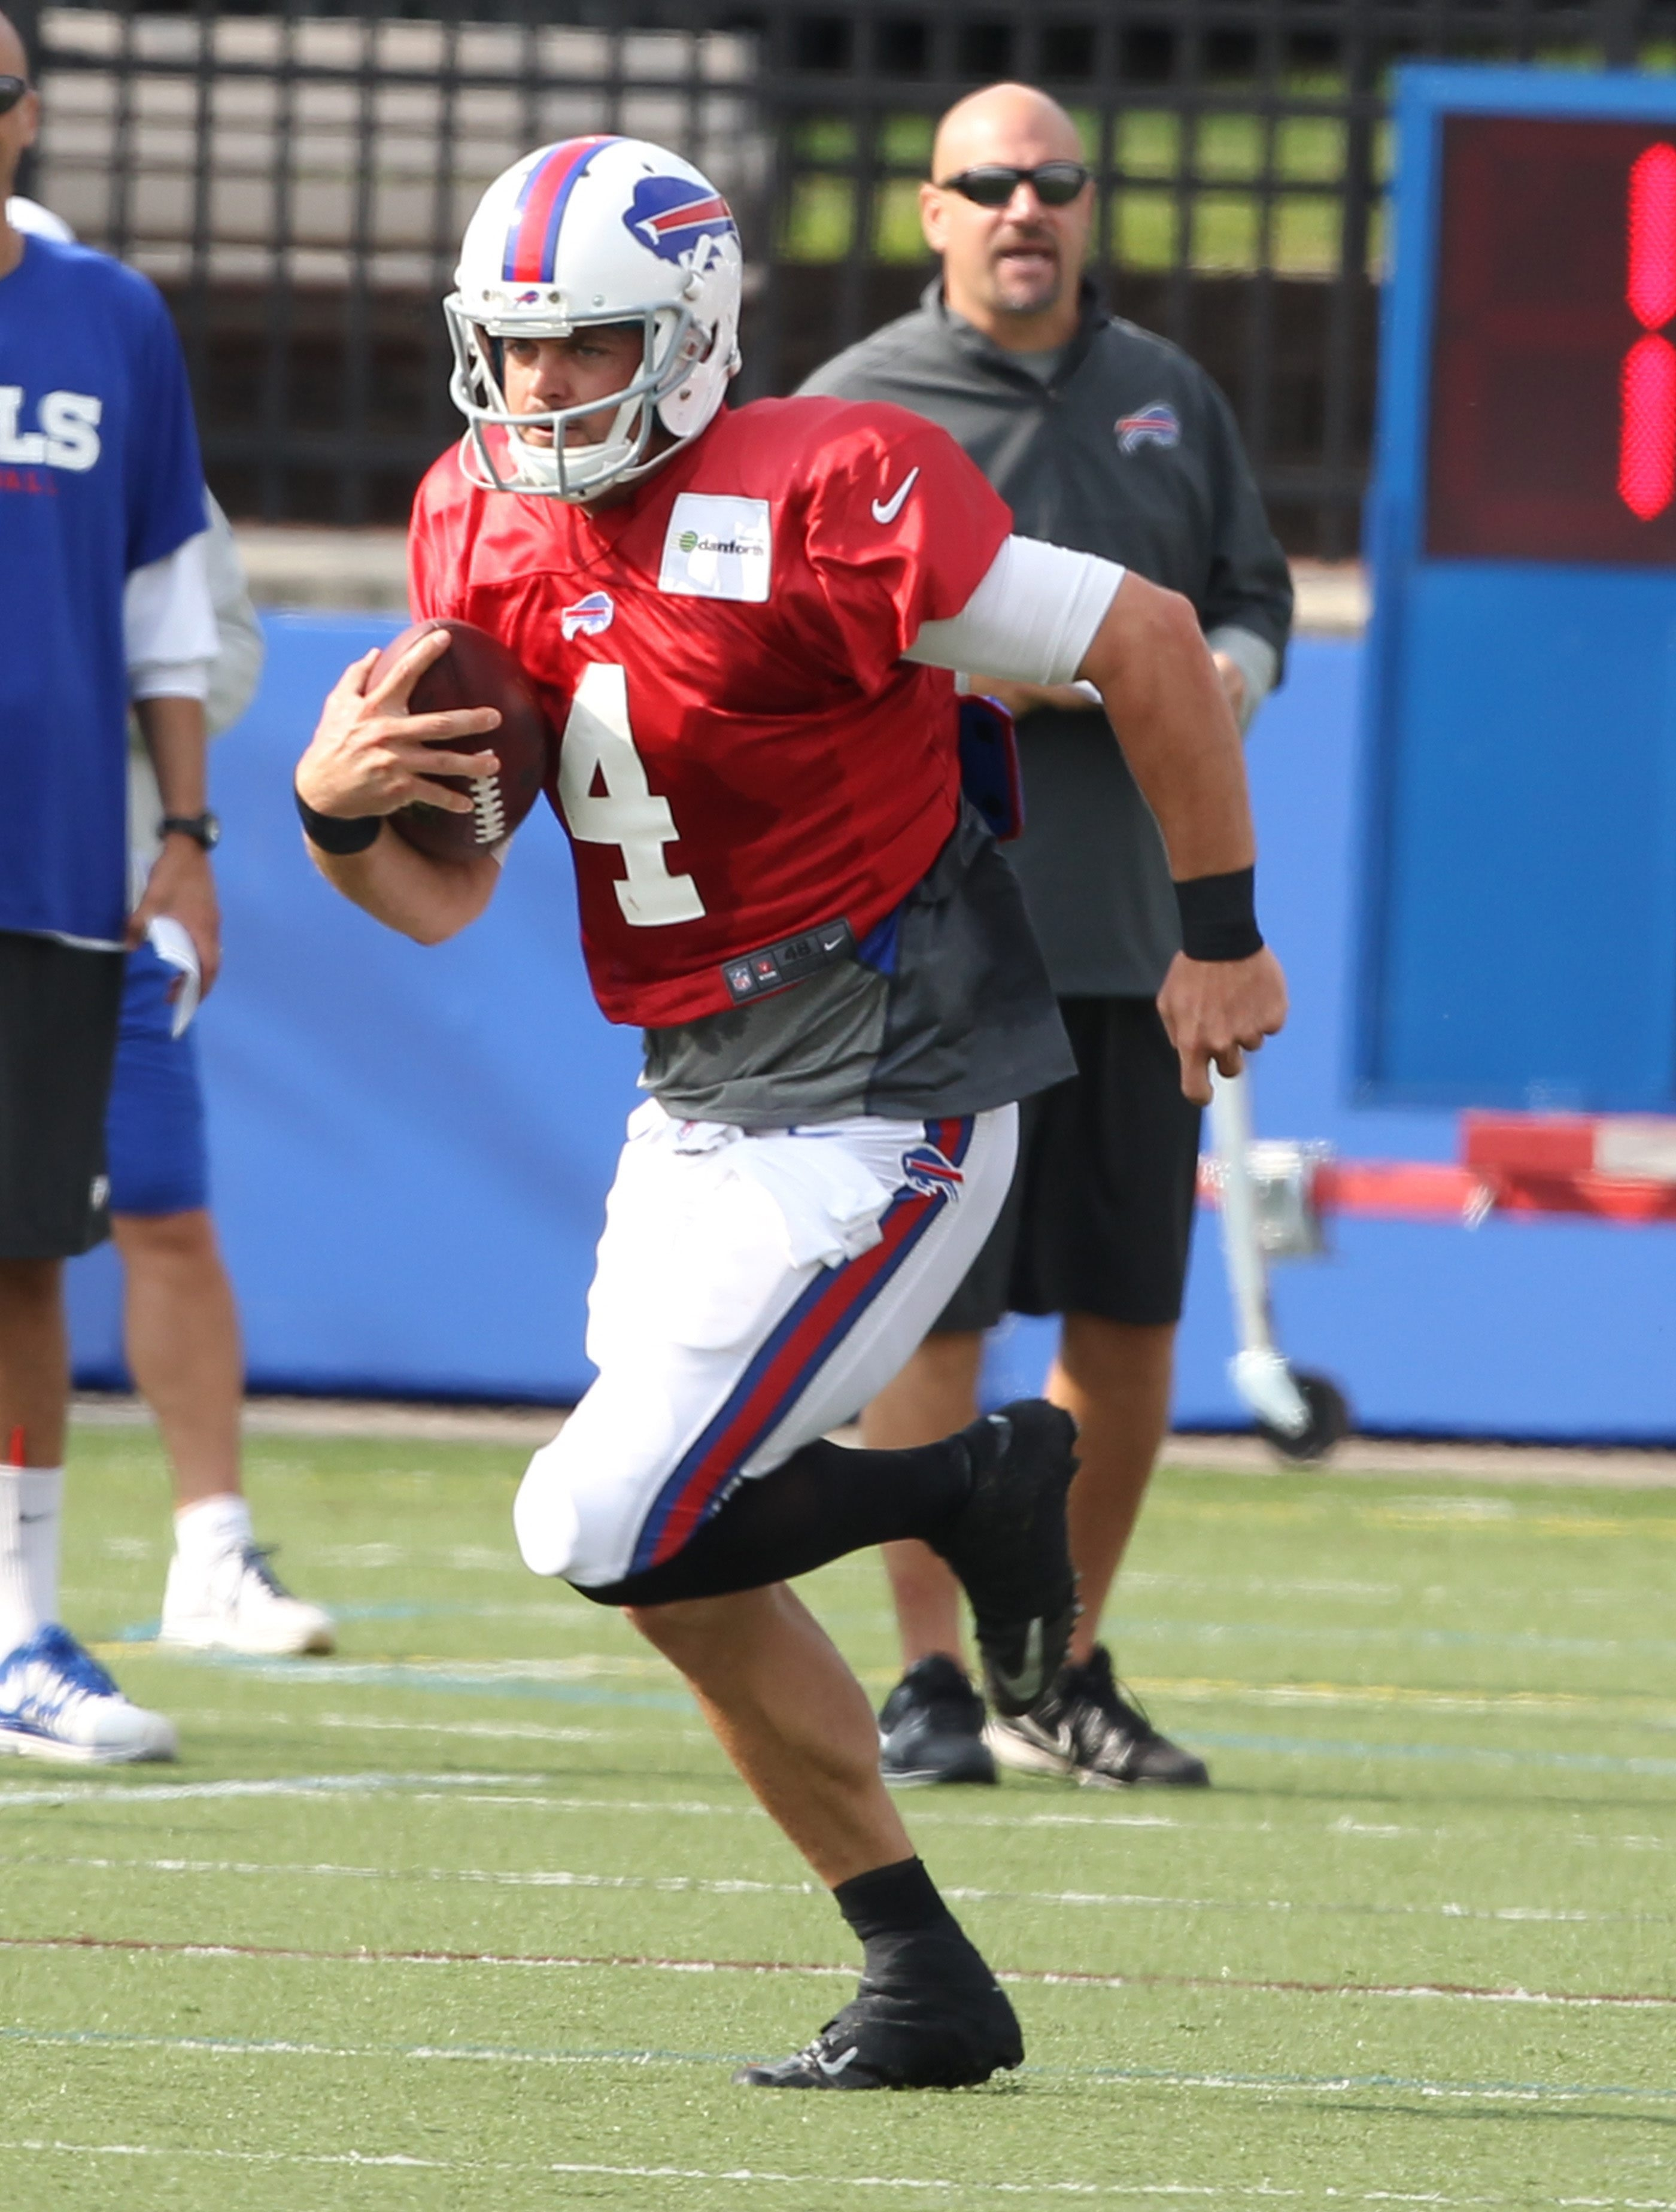 Bills quarterback Kevin Kolb moved well in practice Tuesday.